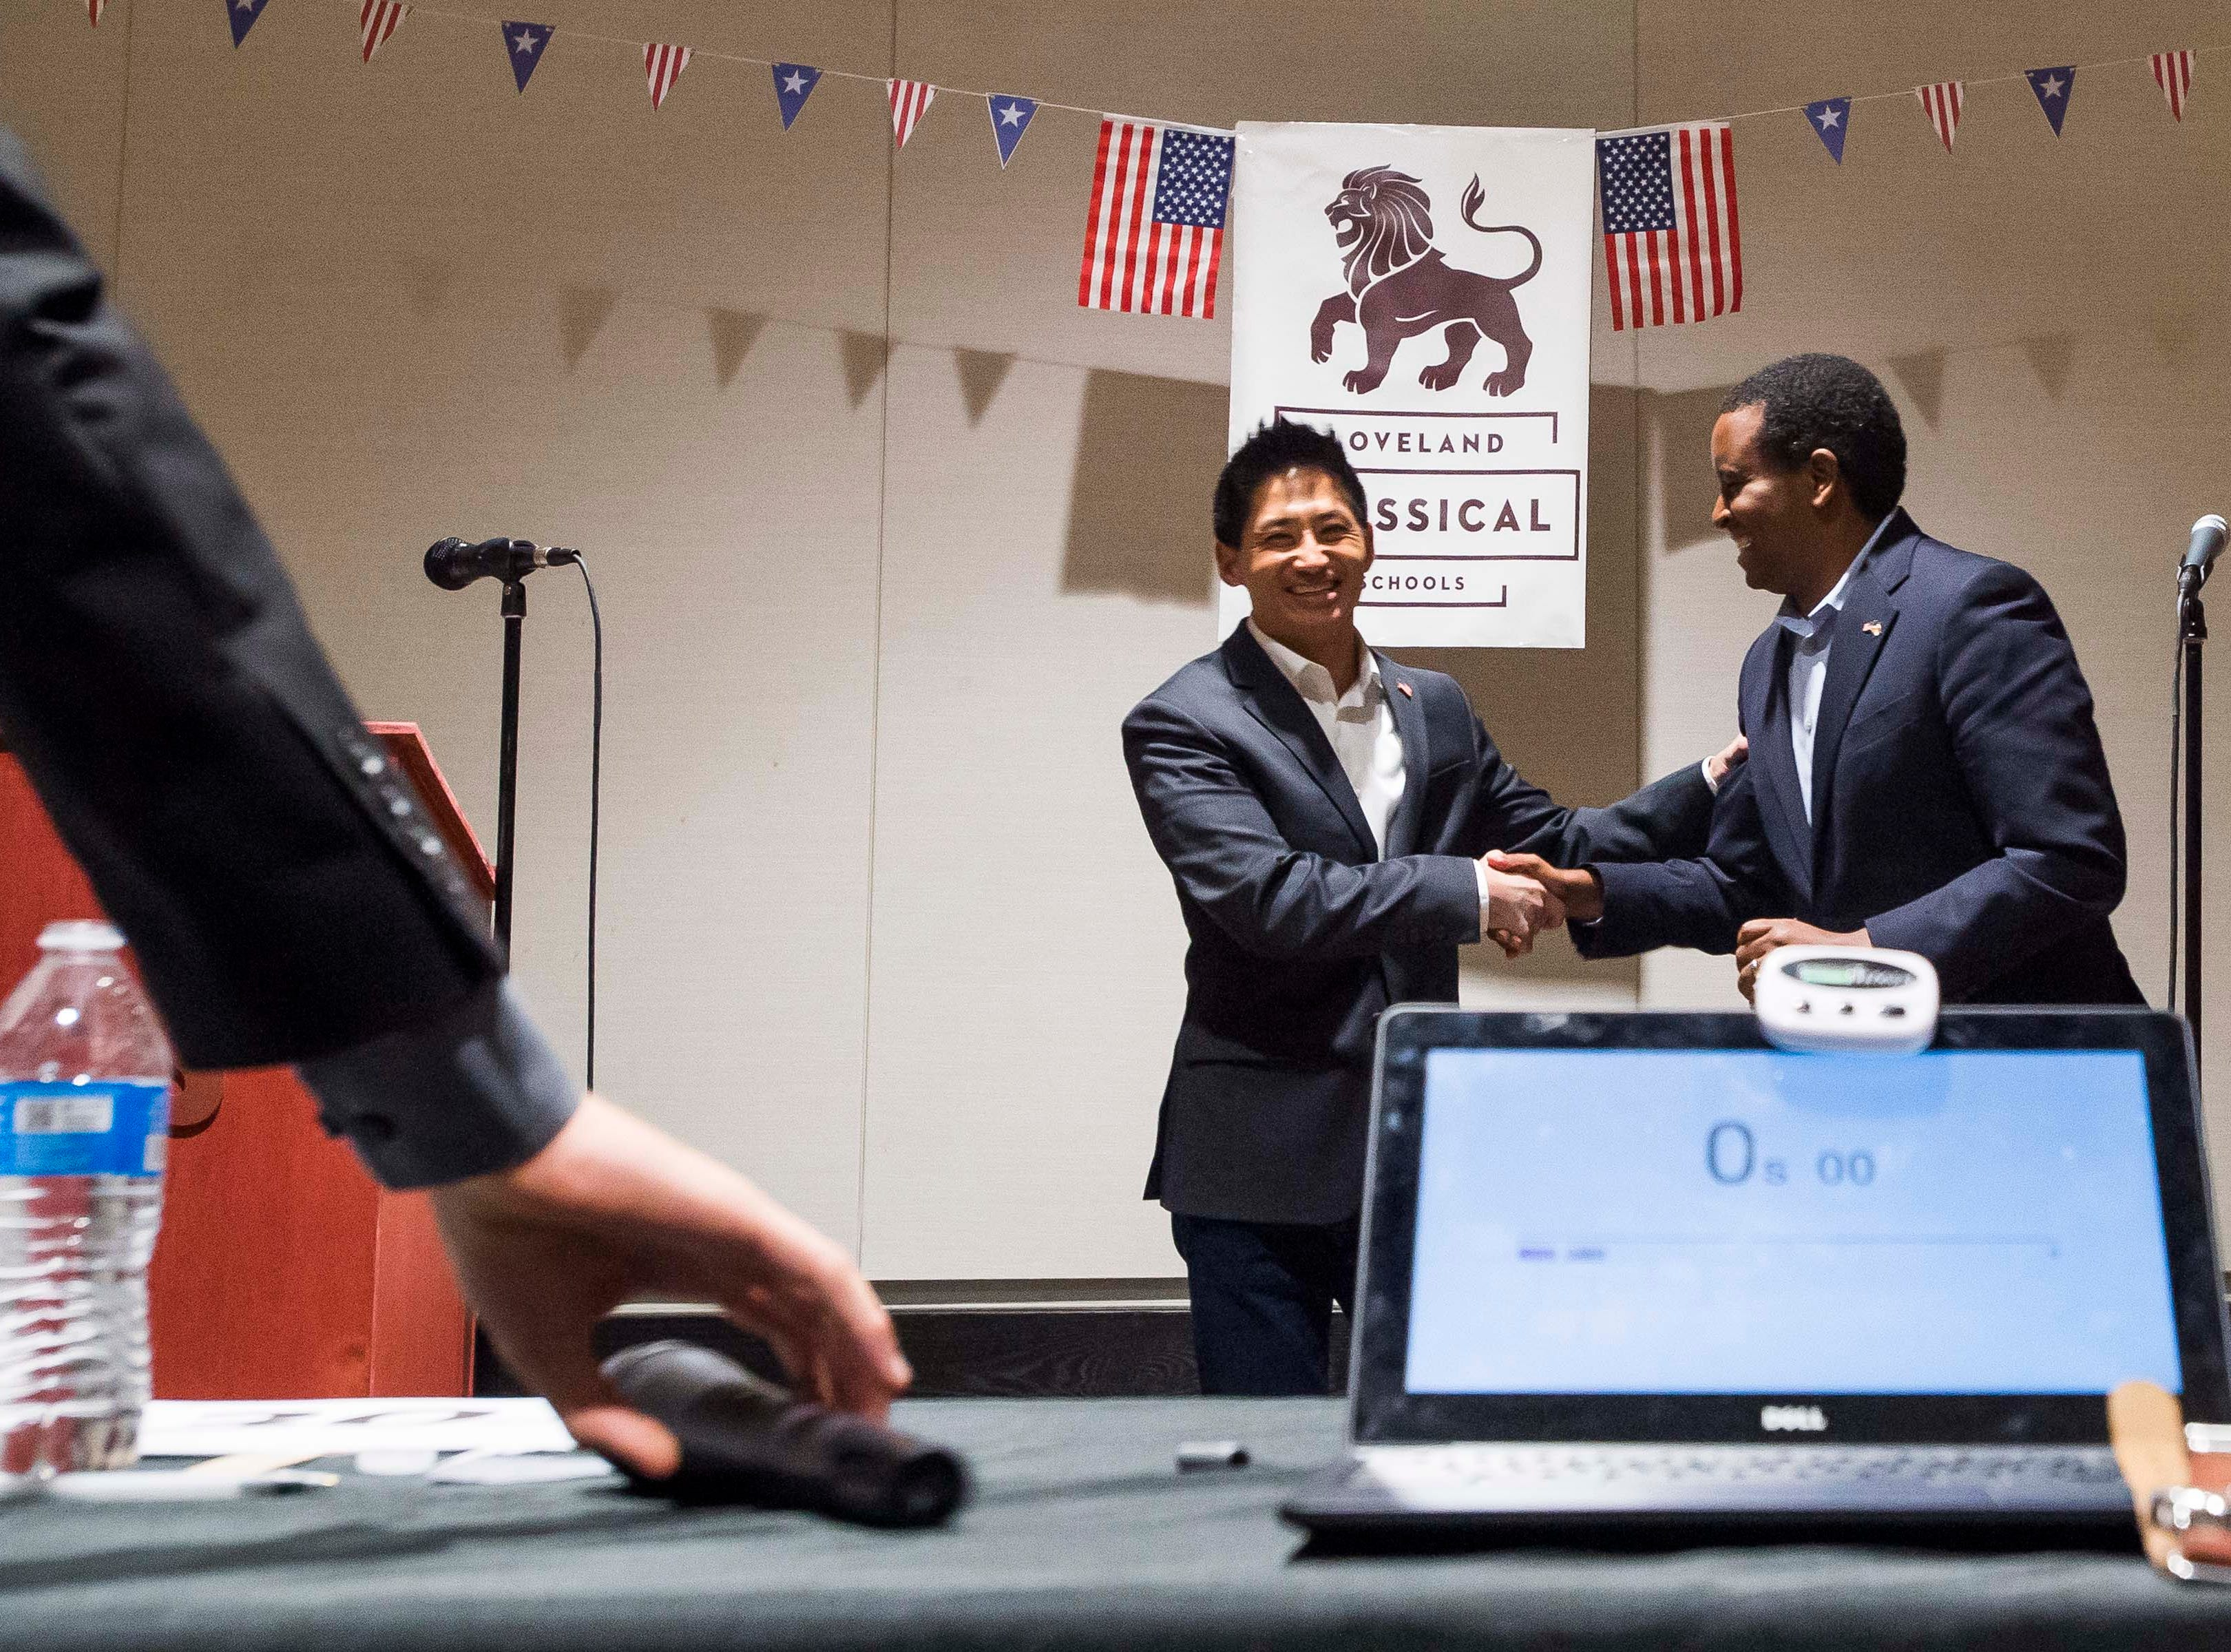 Colorado's 2nd Congressional District Republican nominee Peter Yu, left, and Democratic nominee Joe Neguse, right, shake hands while moderator Tobias Hild grabs the microphone after a debate on Wednesday, Sept. 26, 2018, at the Loveland Classical Schools in Loveland, Colo.